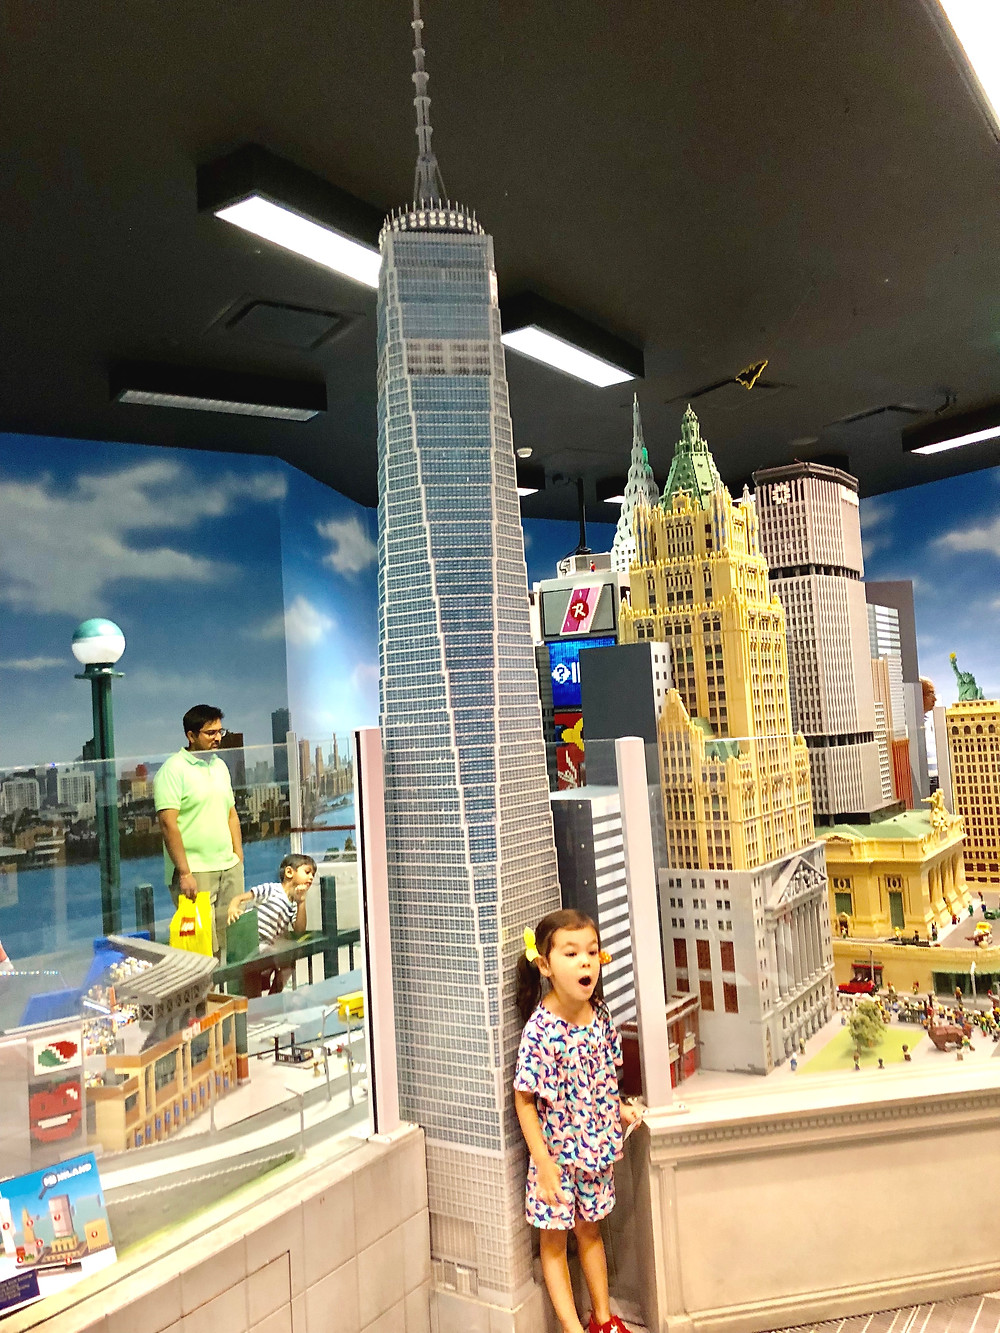 Legoland Discovery Center, Ridge Hill Shopping Center, Summer bucket list, New York City with kids, nyc bucket list, nyc with kids, things to do this summer with kids, Curious G and Me, NYC summer, beyond the beach, Camp Mommy, NYC family, NYC Summer Entertainment Guide for Kids, Summer fun NYC, NYC parents, NYC kids, NYC Mom Blogger, Manhattan Mom